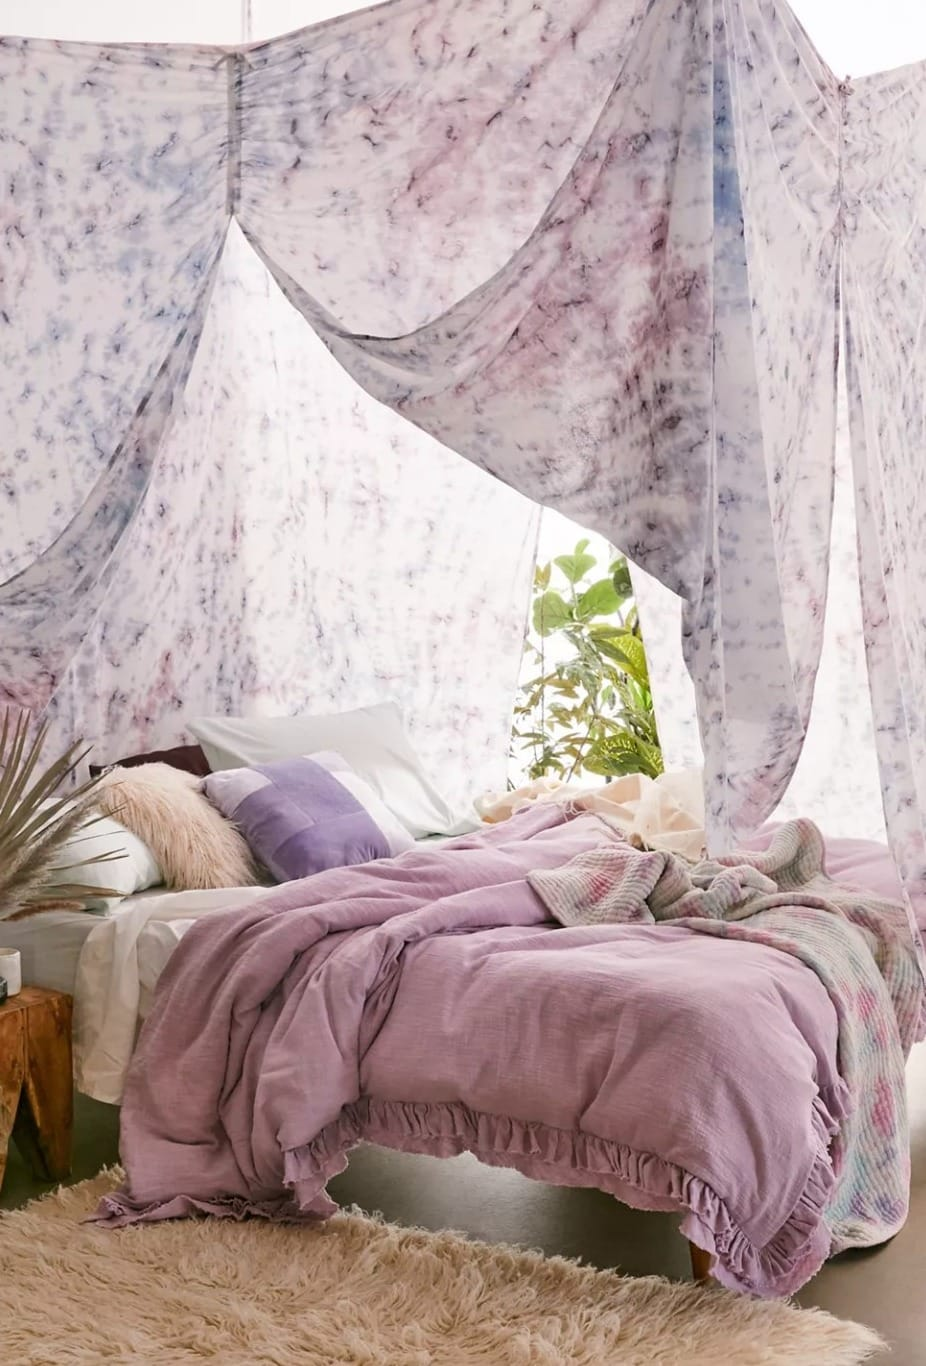 Turn your Bed into the Ultimate Den with a Canopy